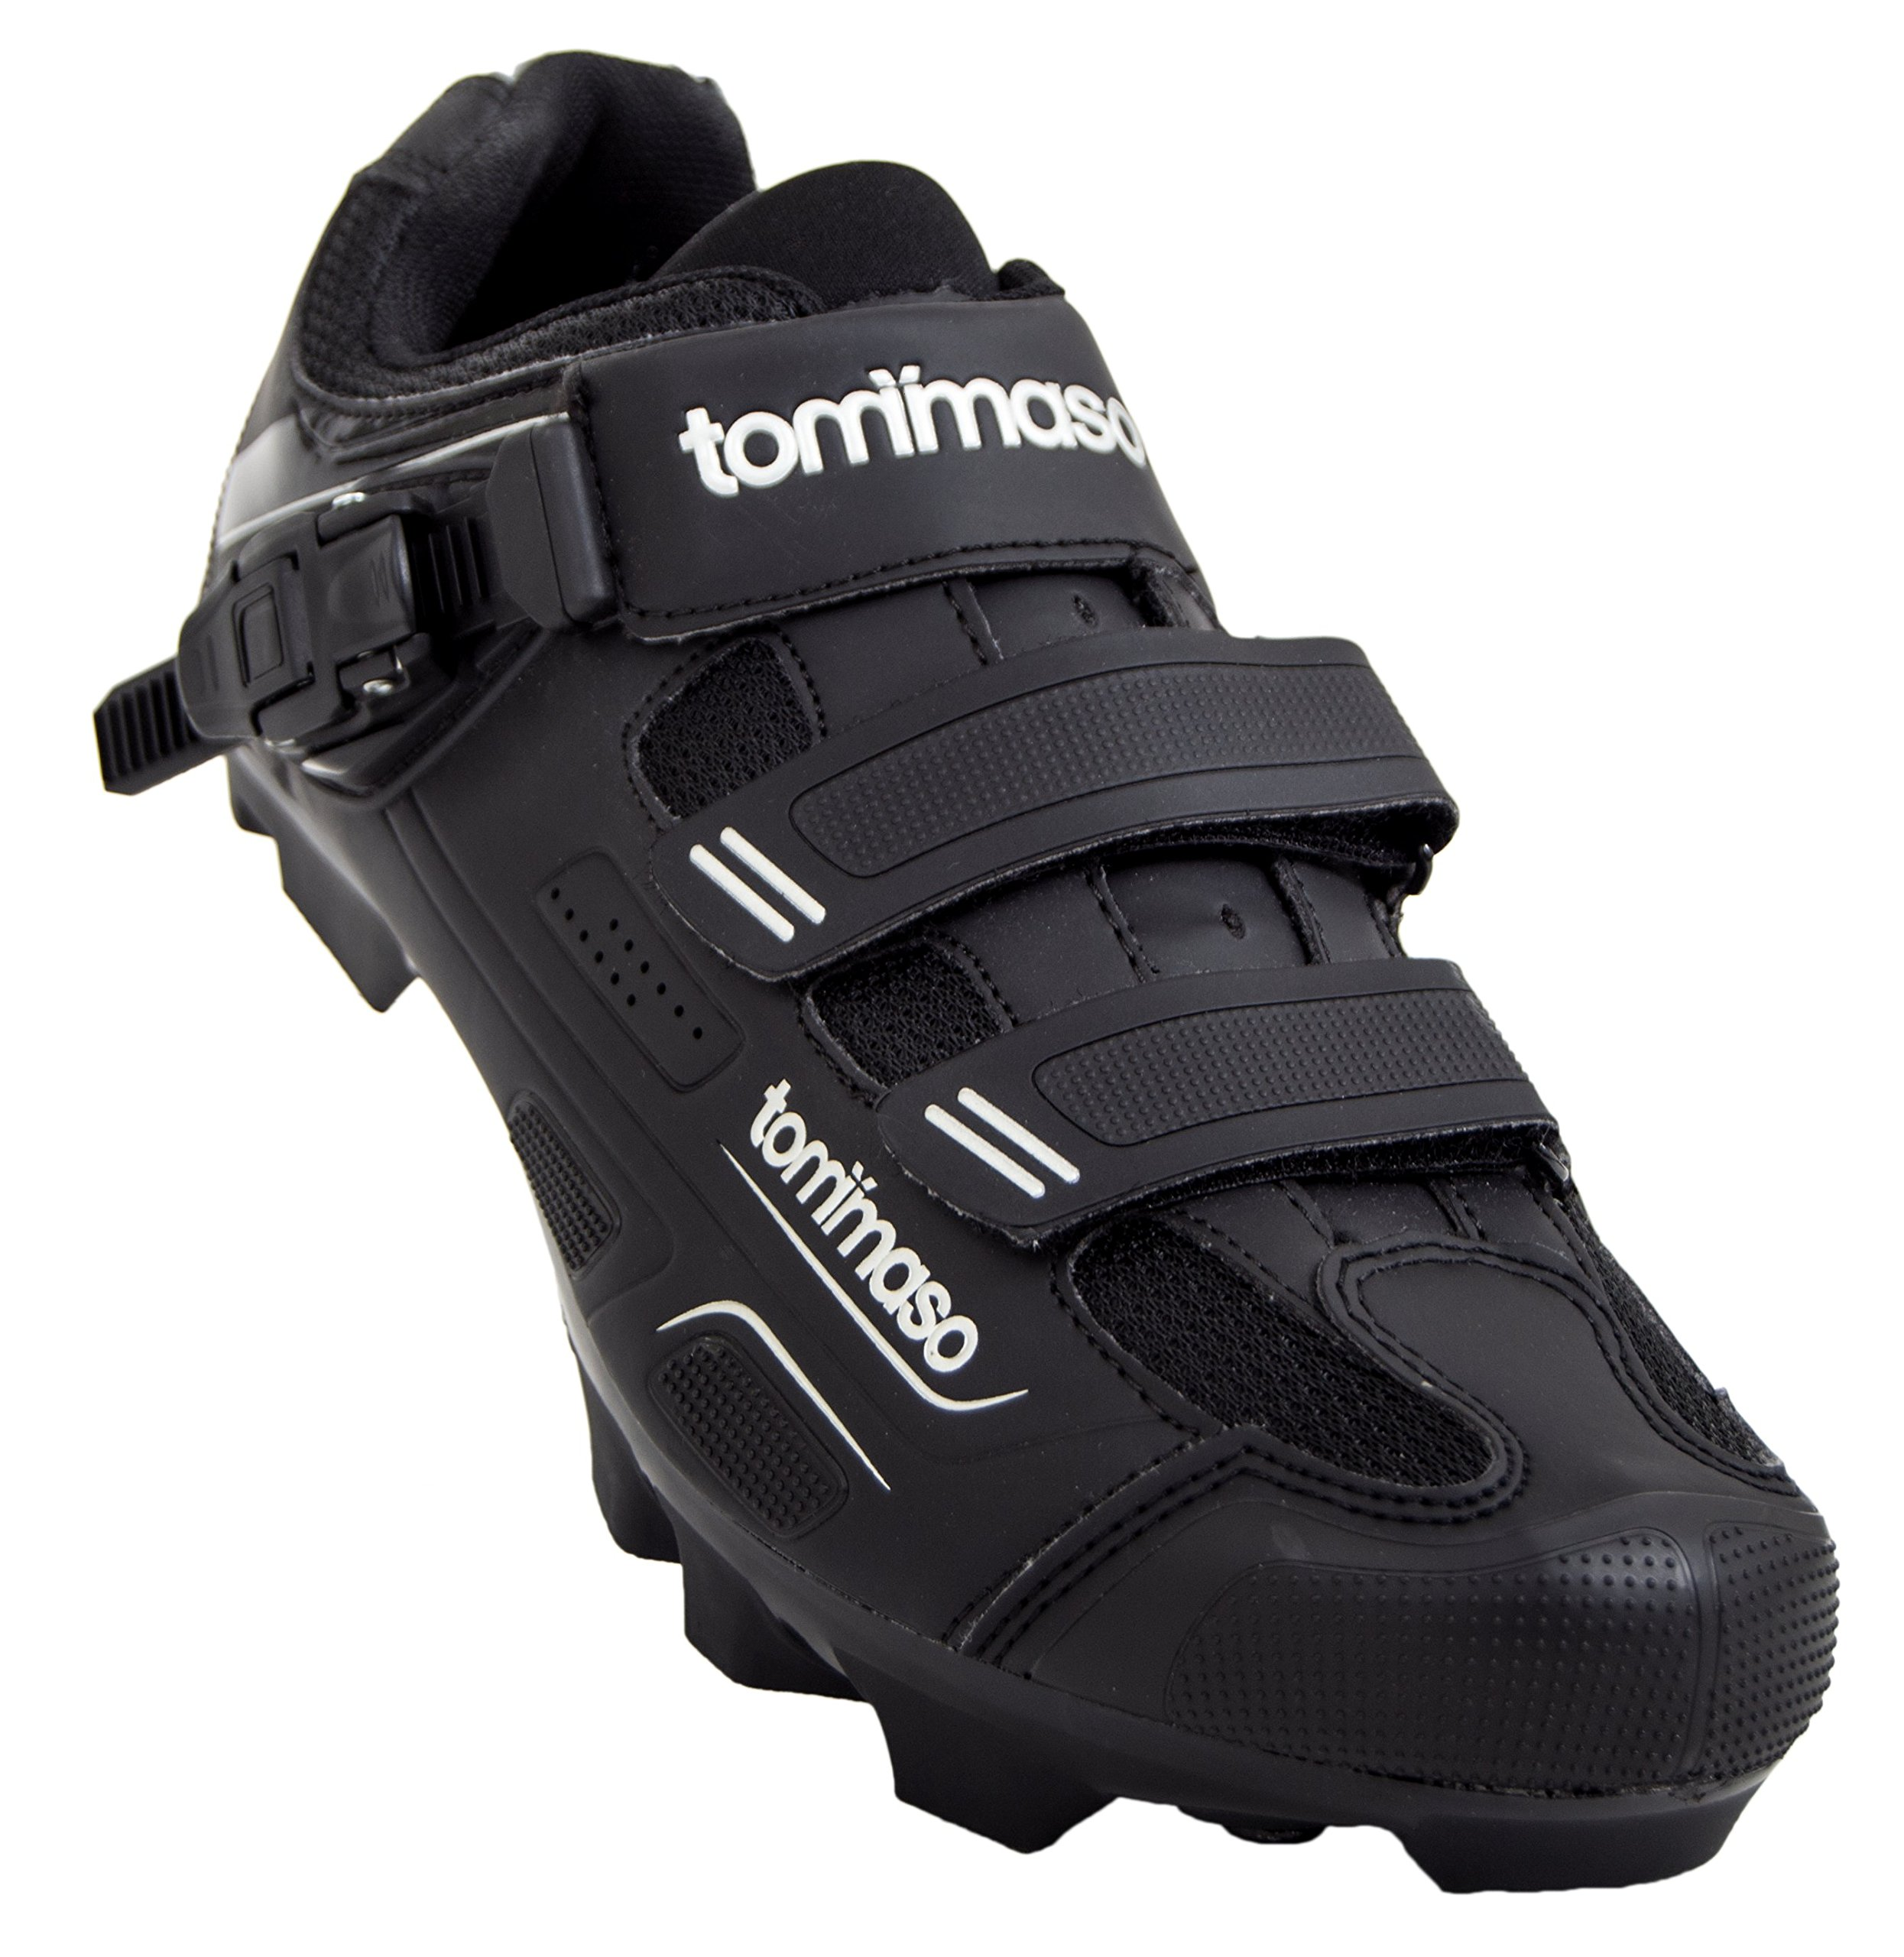 Tommaso Montagna 200 Men's Mountain Bike MTB Spin Cycling Shoe with Buckle Compatible with SPD Cleats Black - 43 by Tommaso